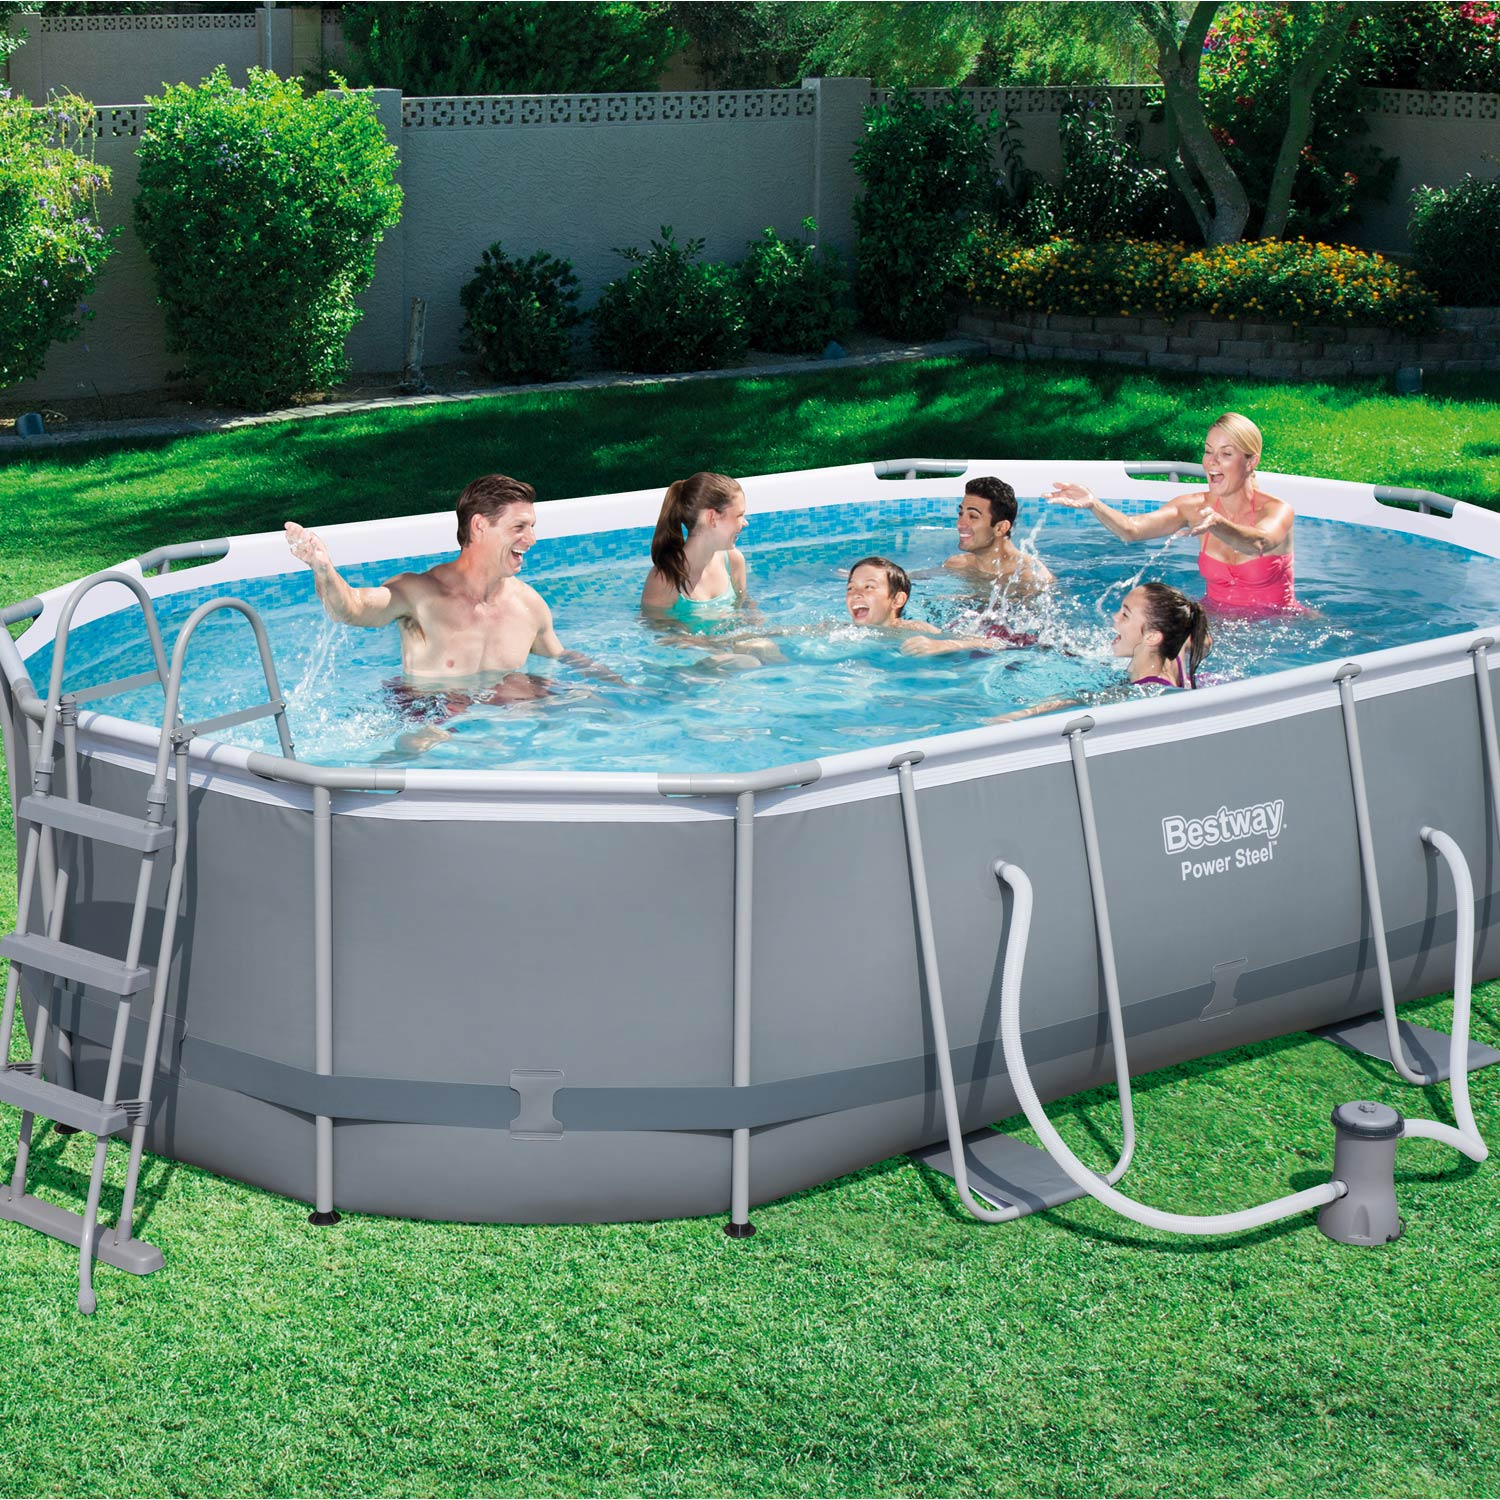 Piscine hors sol autoportante tubulaire bestway l x for Piscine bestway tubulaire